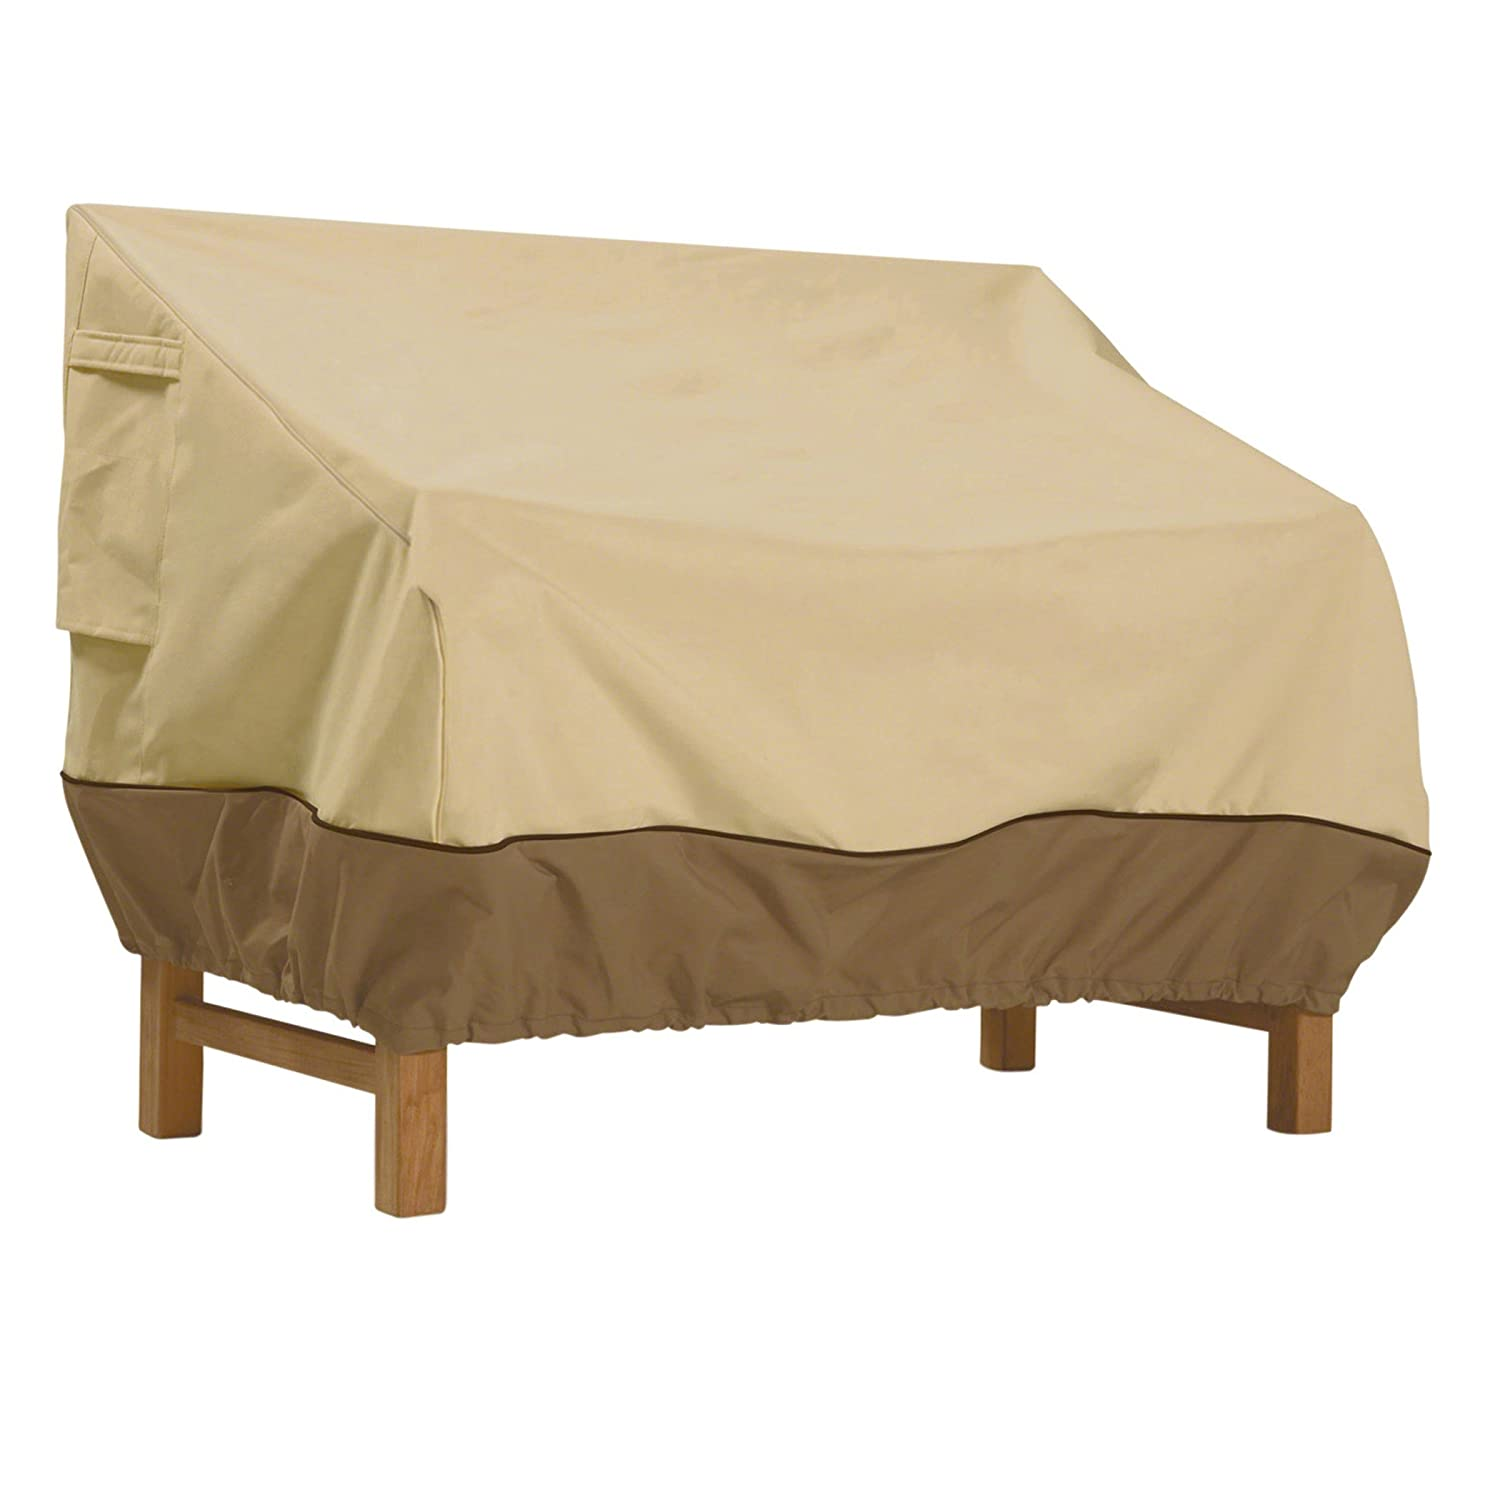 best outdoor furniture covers. patio furniture covers at amazoncom outdoor best f